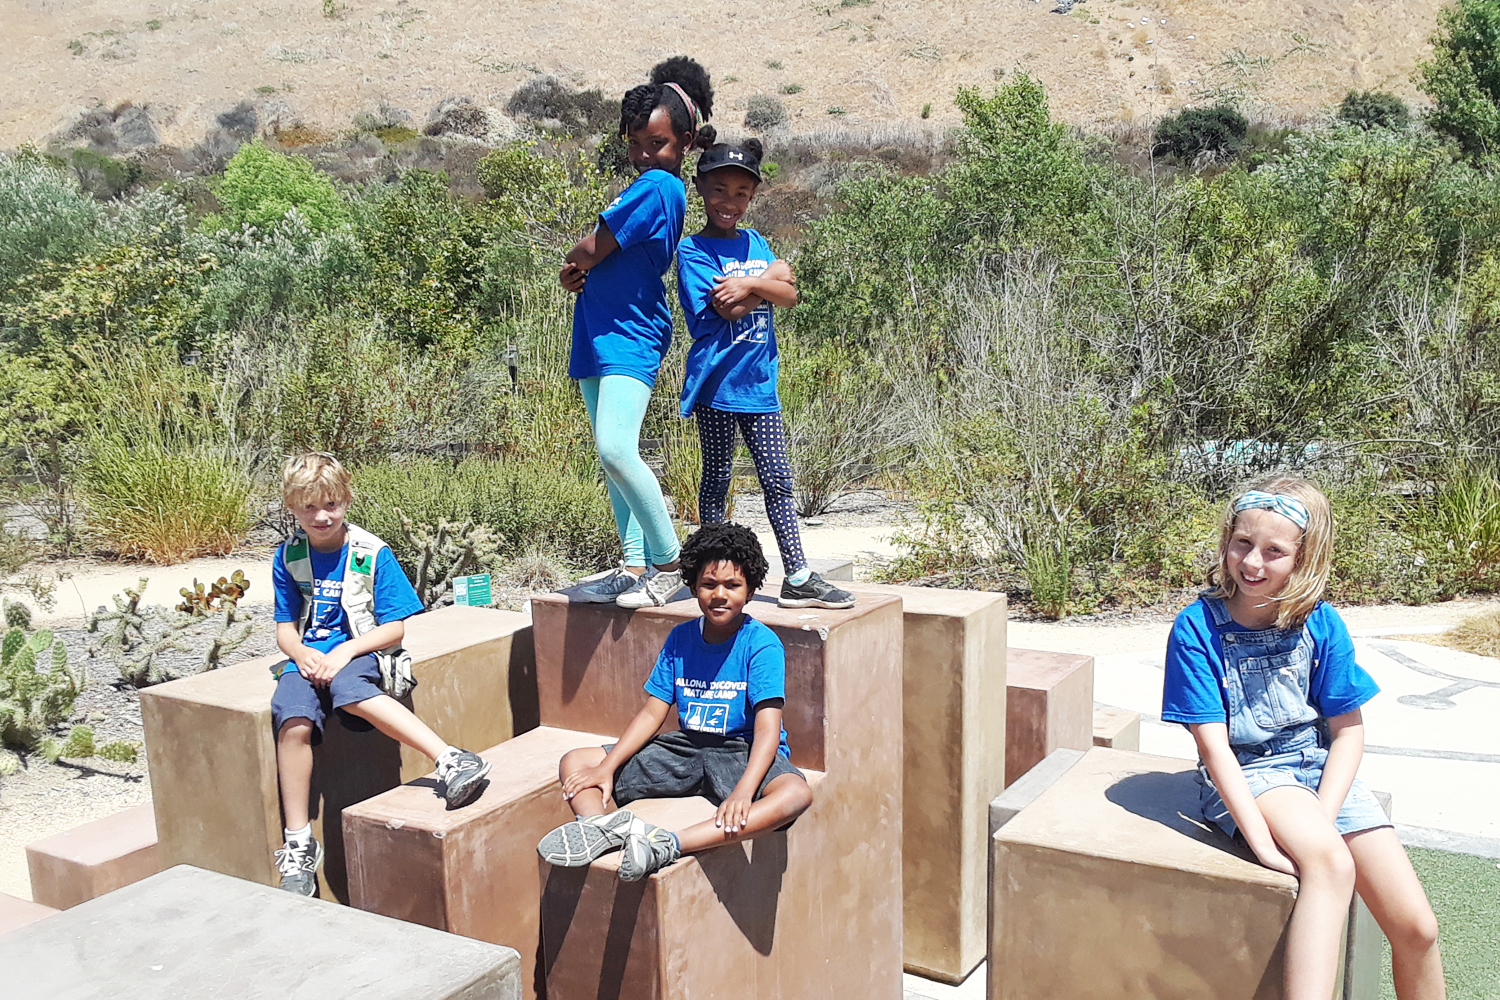 Campers at Ballona Discovery Park